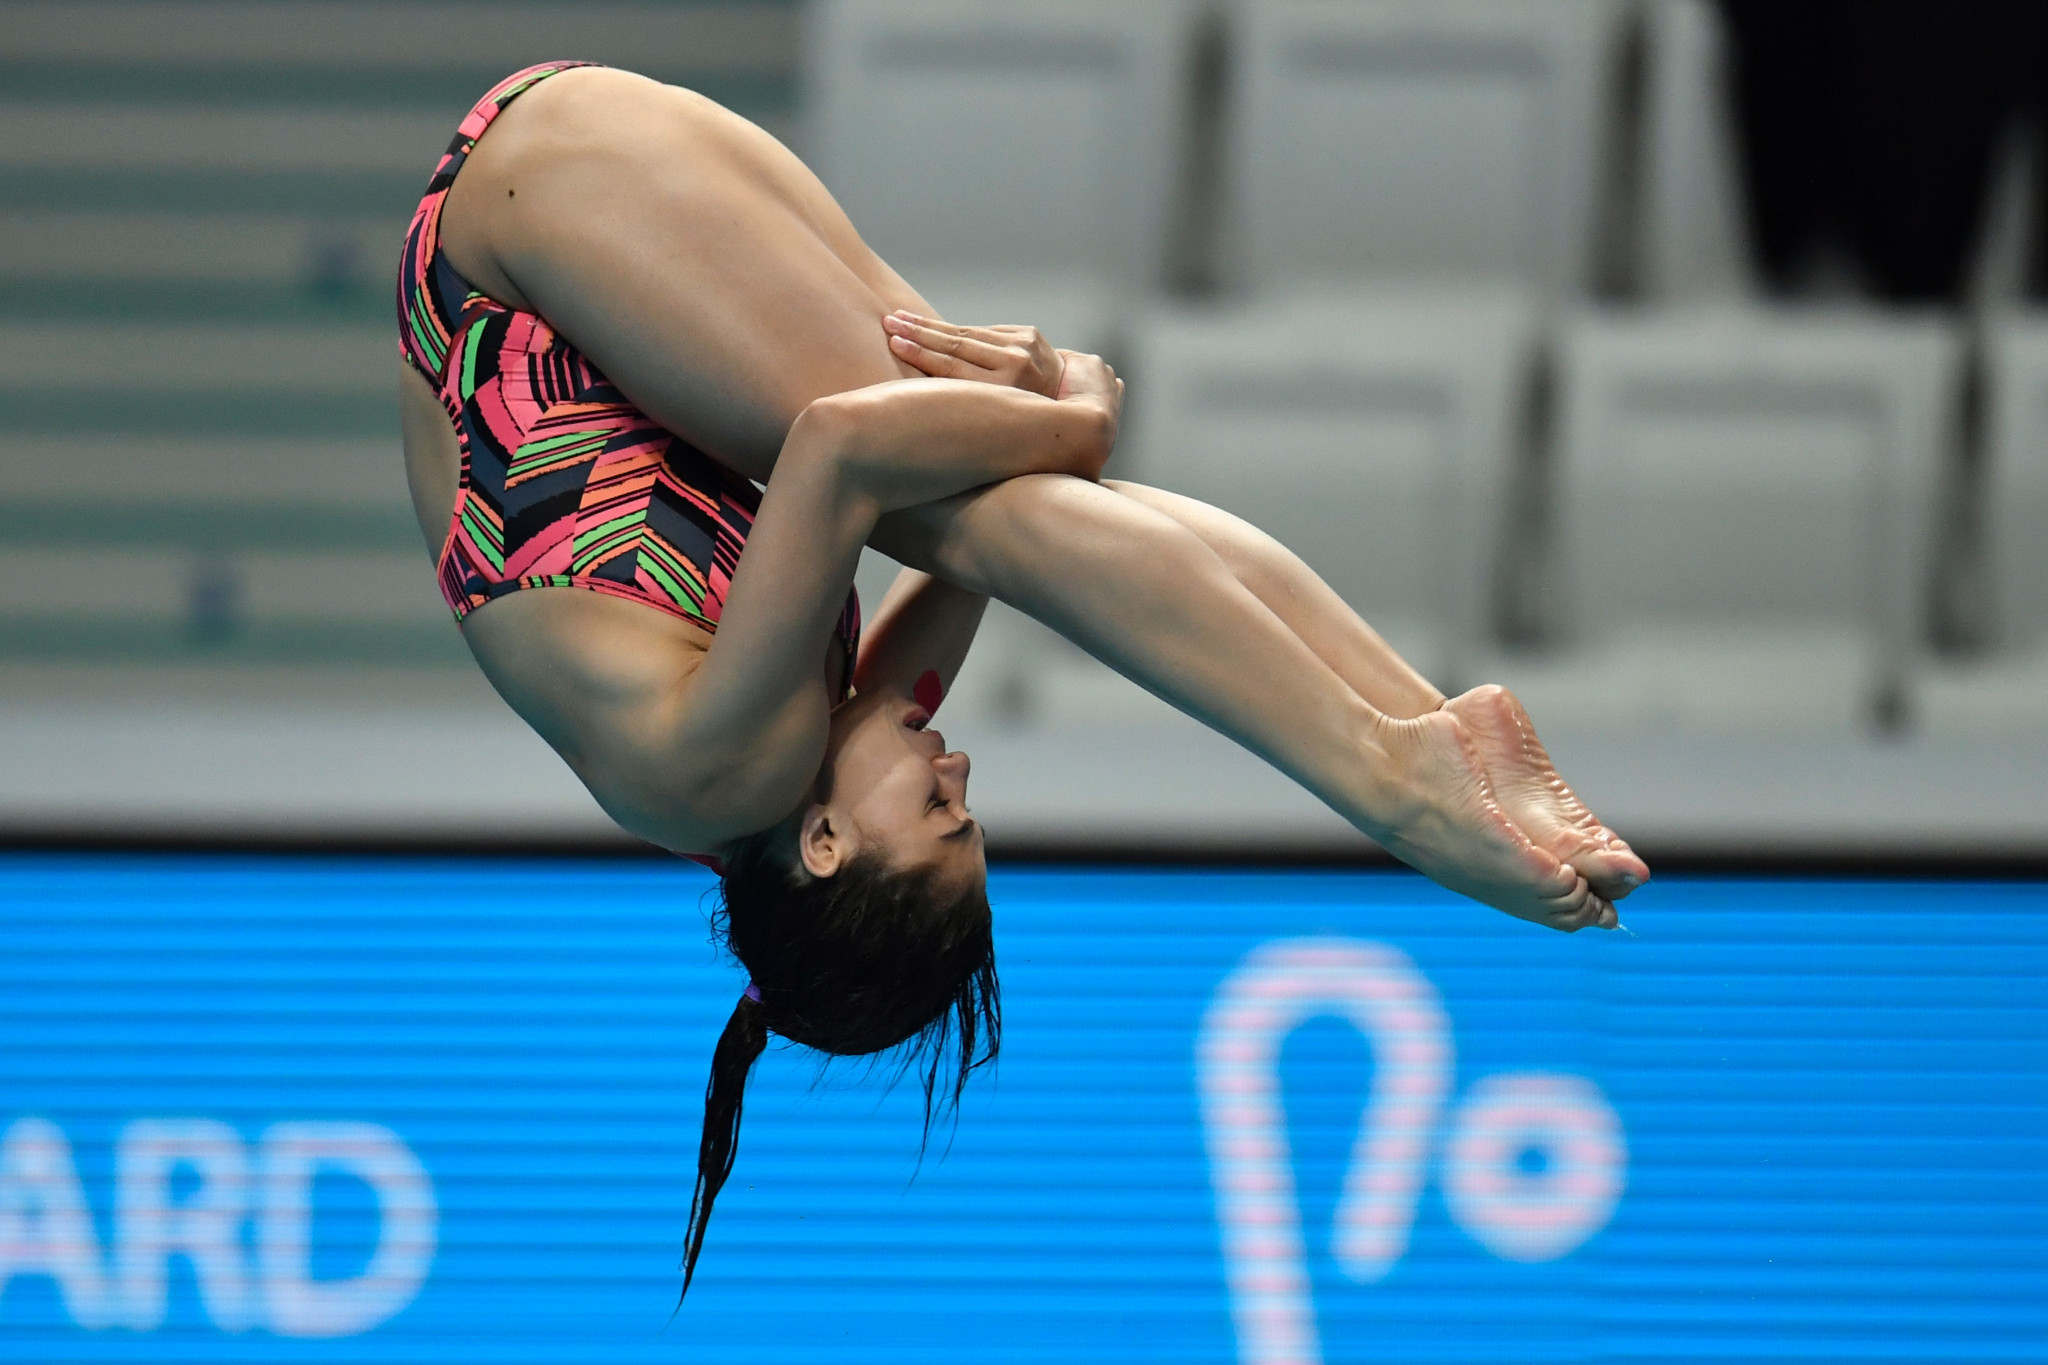 Mexico's Dolores Hernández is bidding to defend her 1m Springboard gold medal from the 2017 Taipei Summer Universiade ©Getty Images